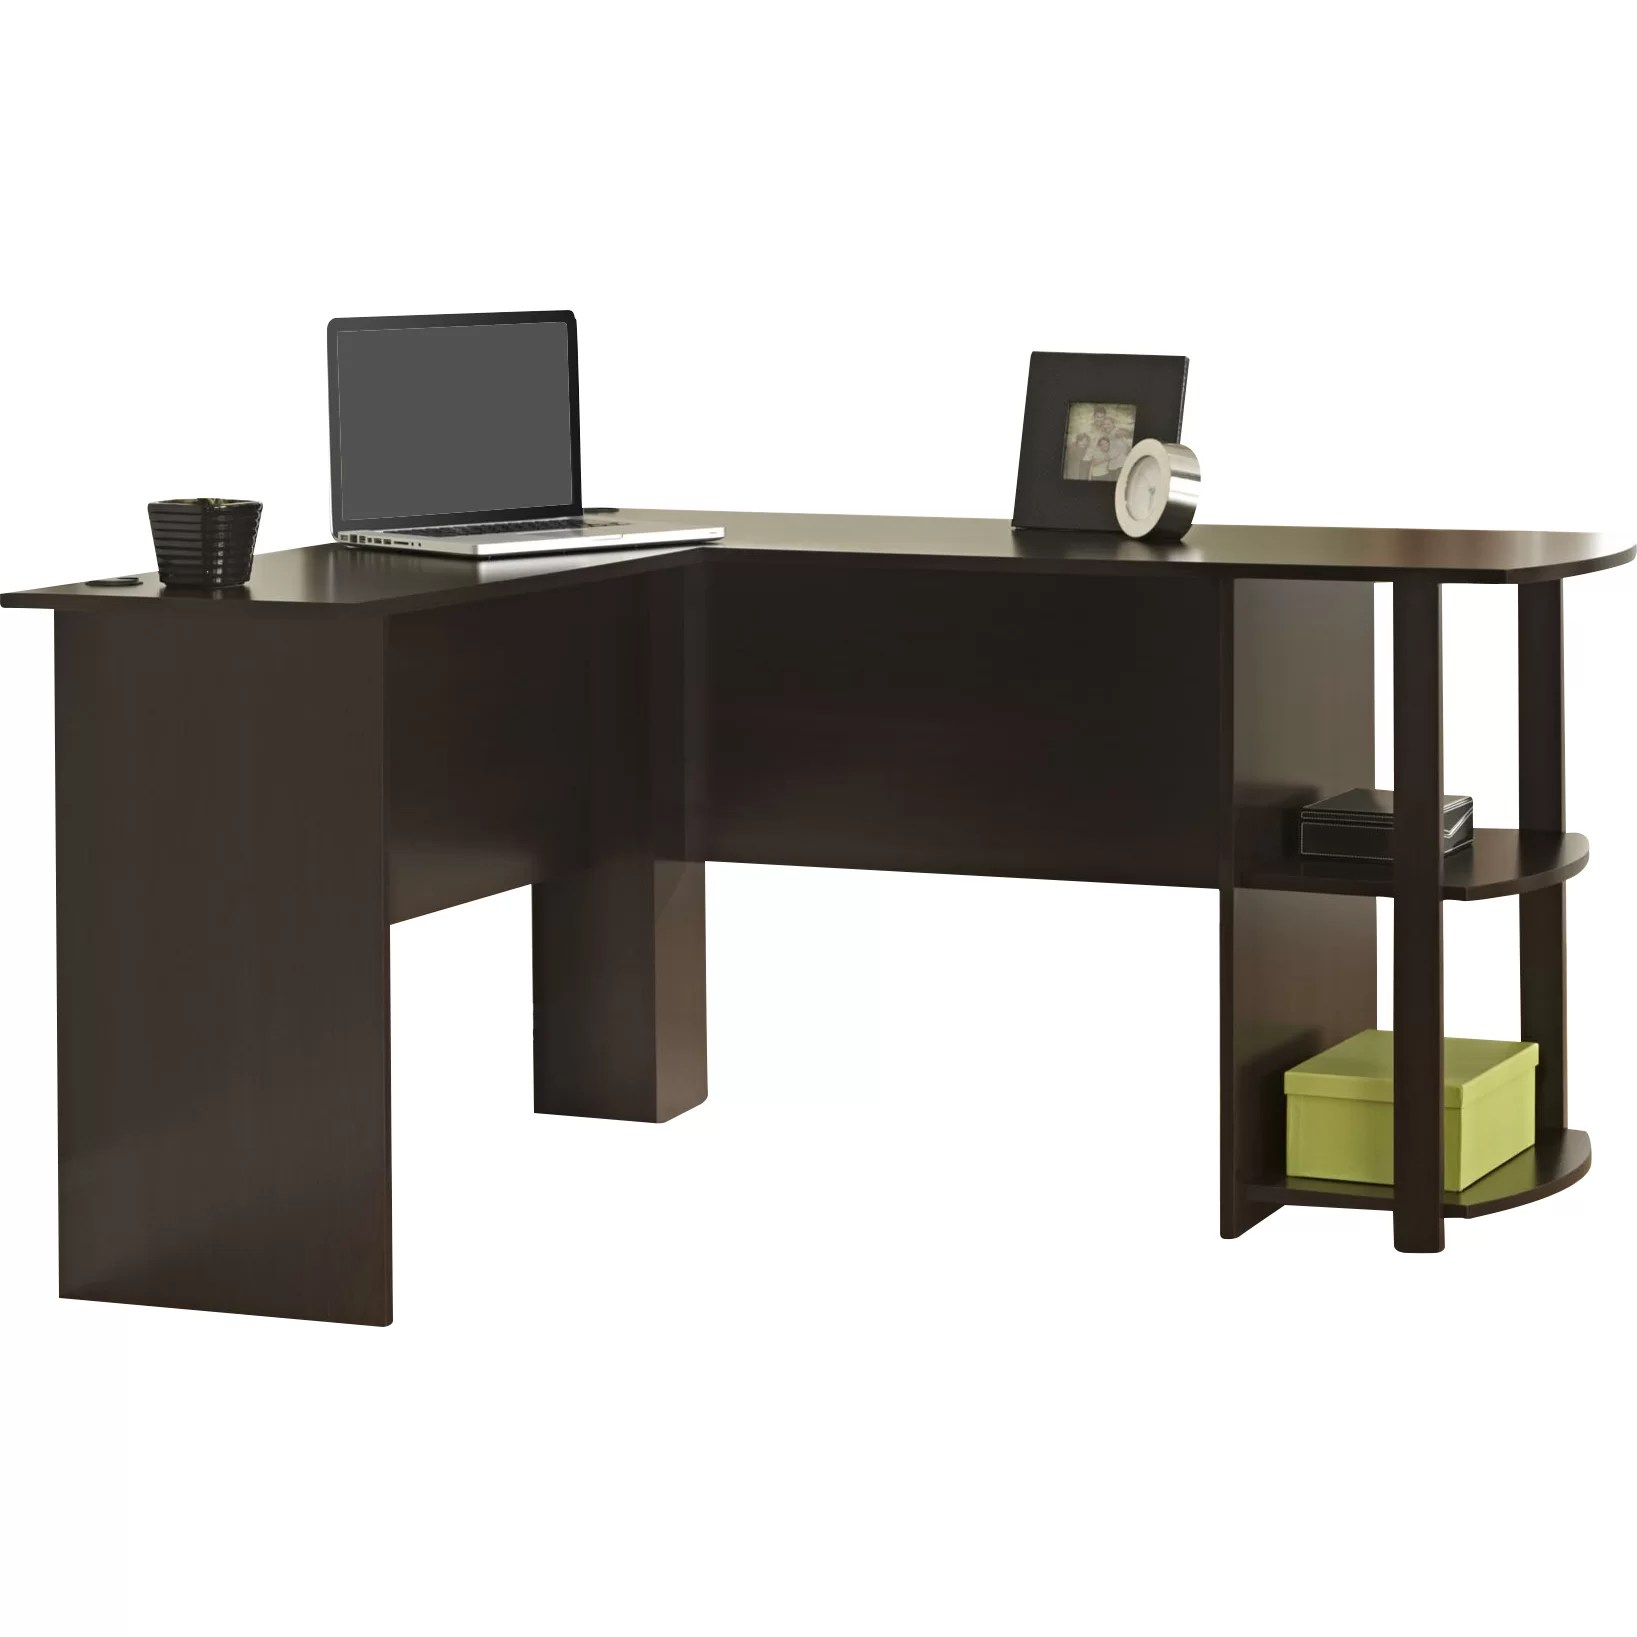 Ameriwood Computer Desk with 2 Shelves  Reviews  Wayfair